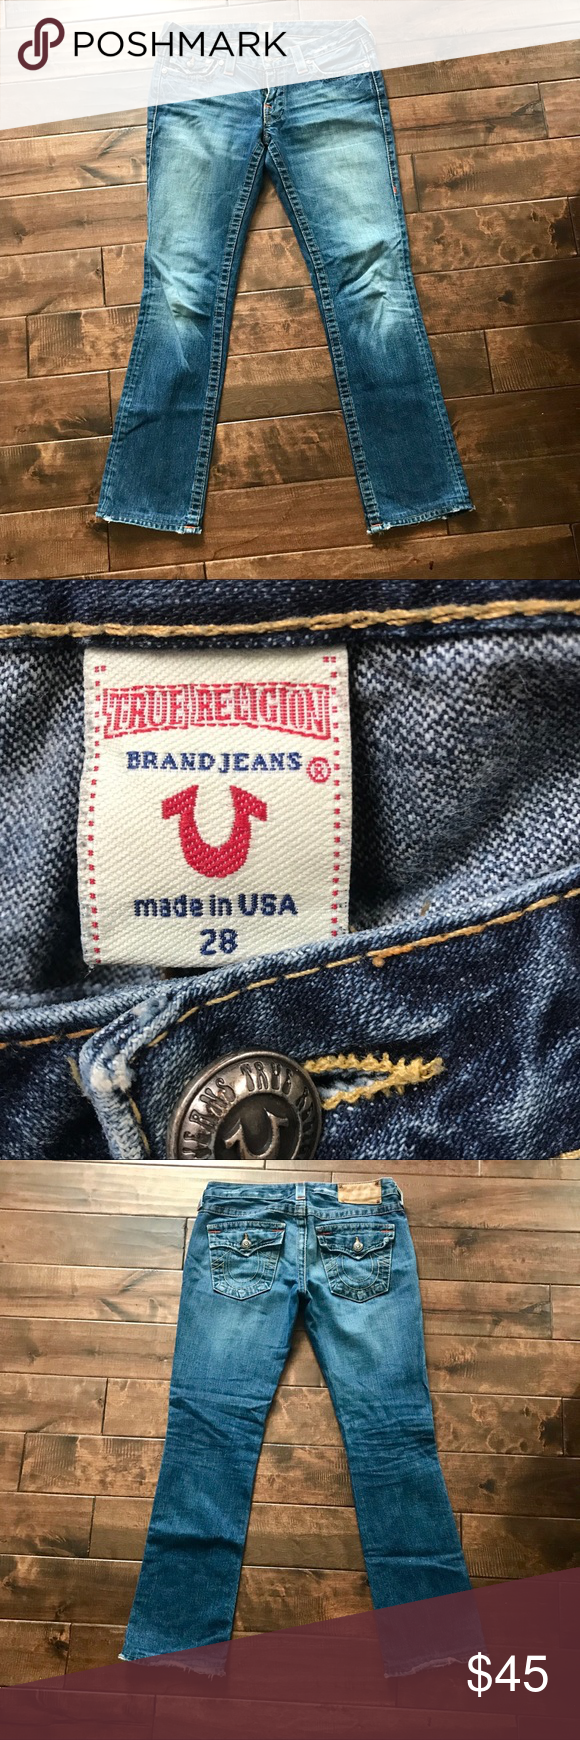 3f0f6b578 True Religion straight jeans - size 28 True Religion jeans with leather  label on back of waist. Amber stitching. Nice flaps on back pockets with  distressed ...